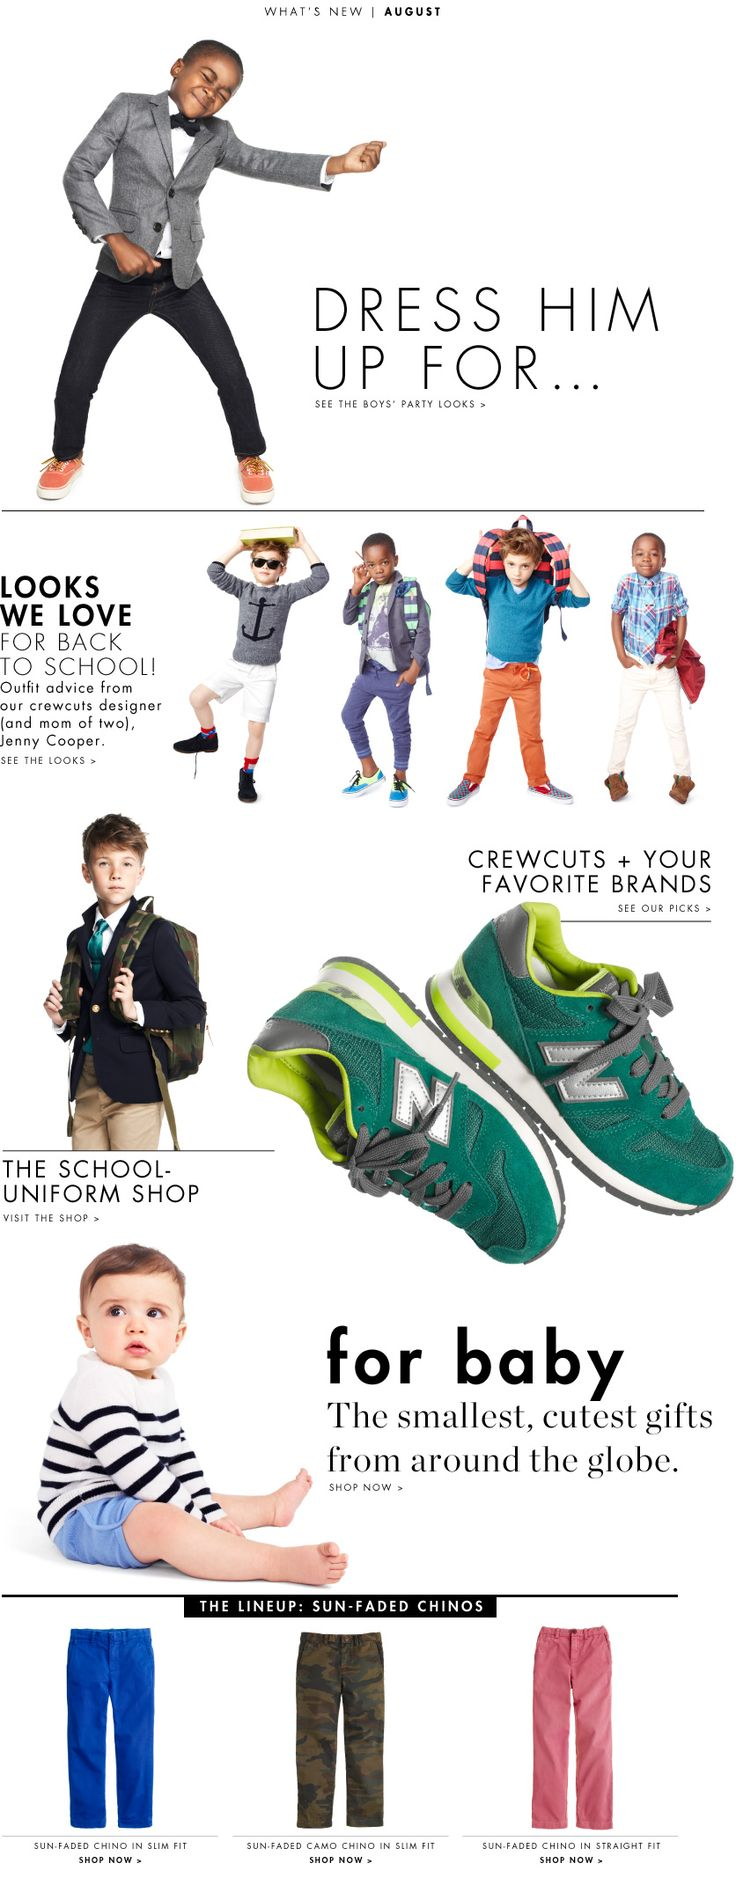 Boys Clothes for Back to School & Fall : Looks We Love | J.Crew.com